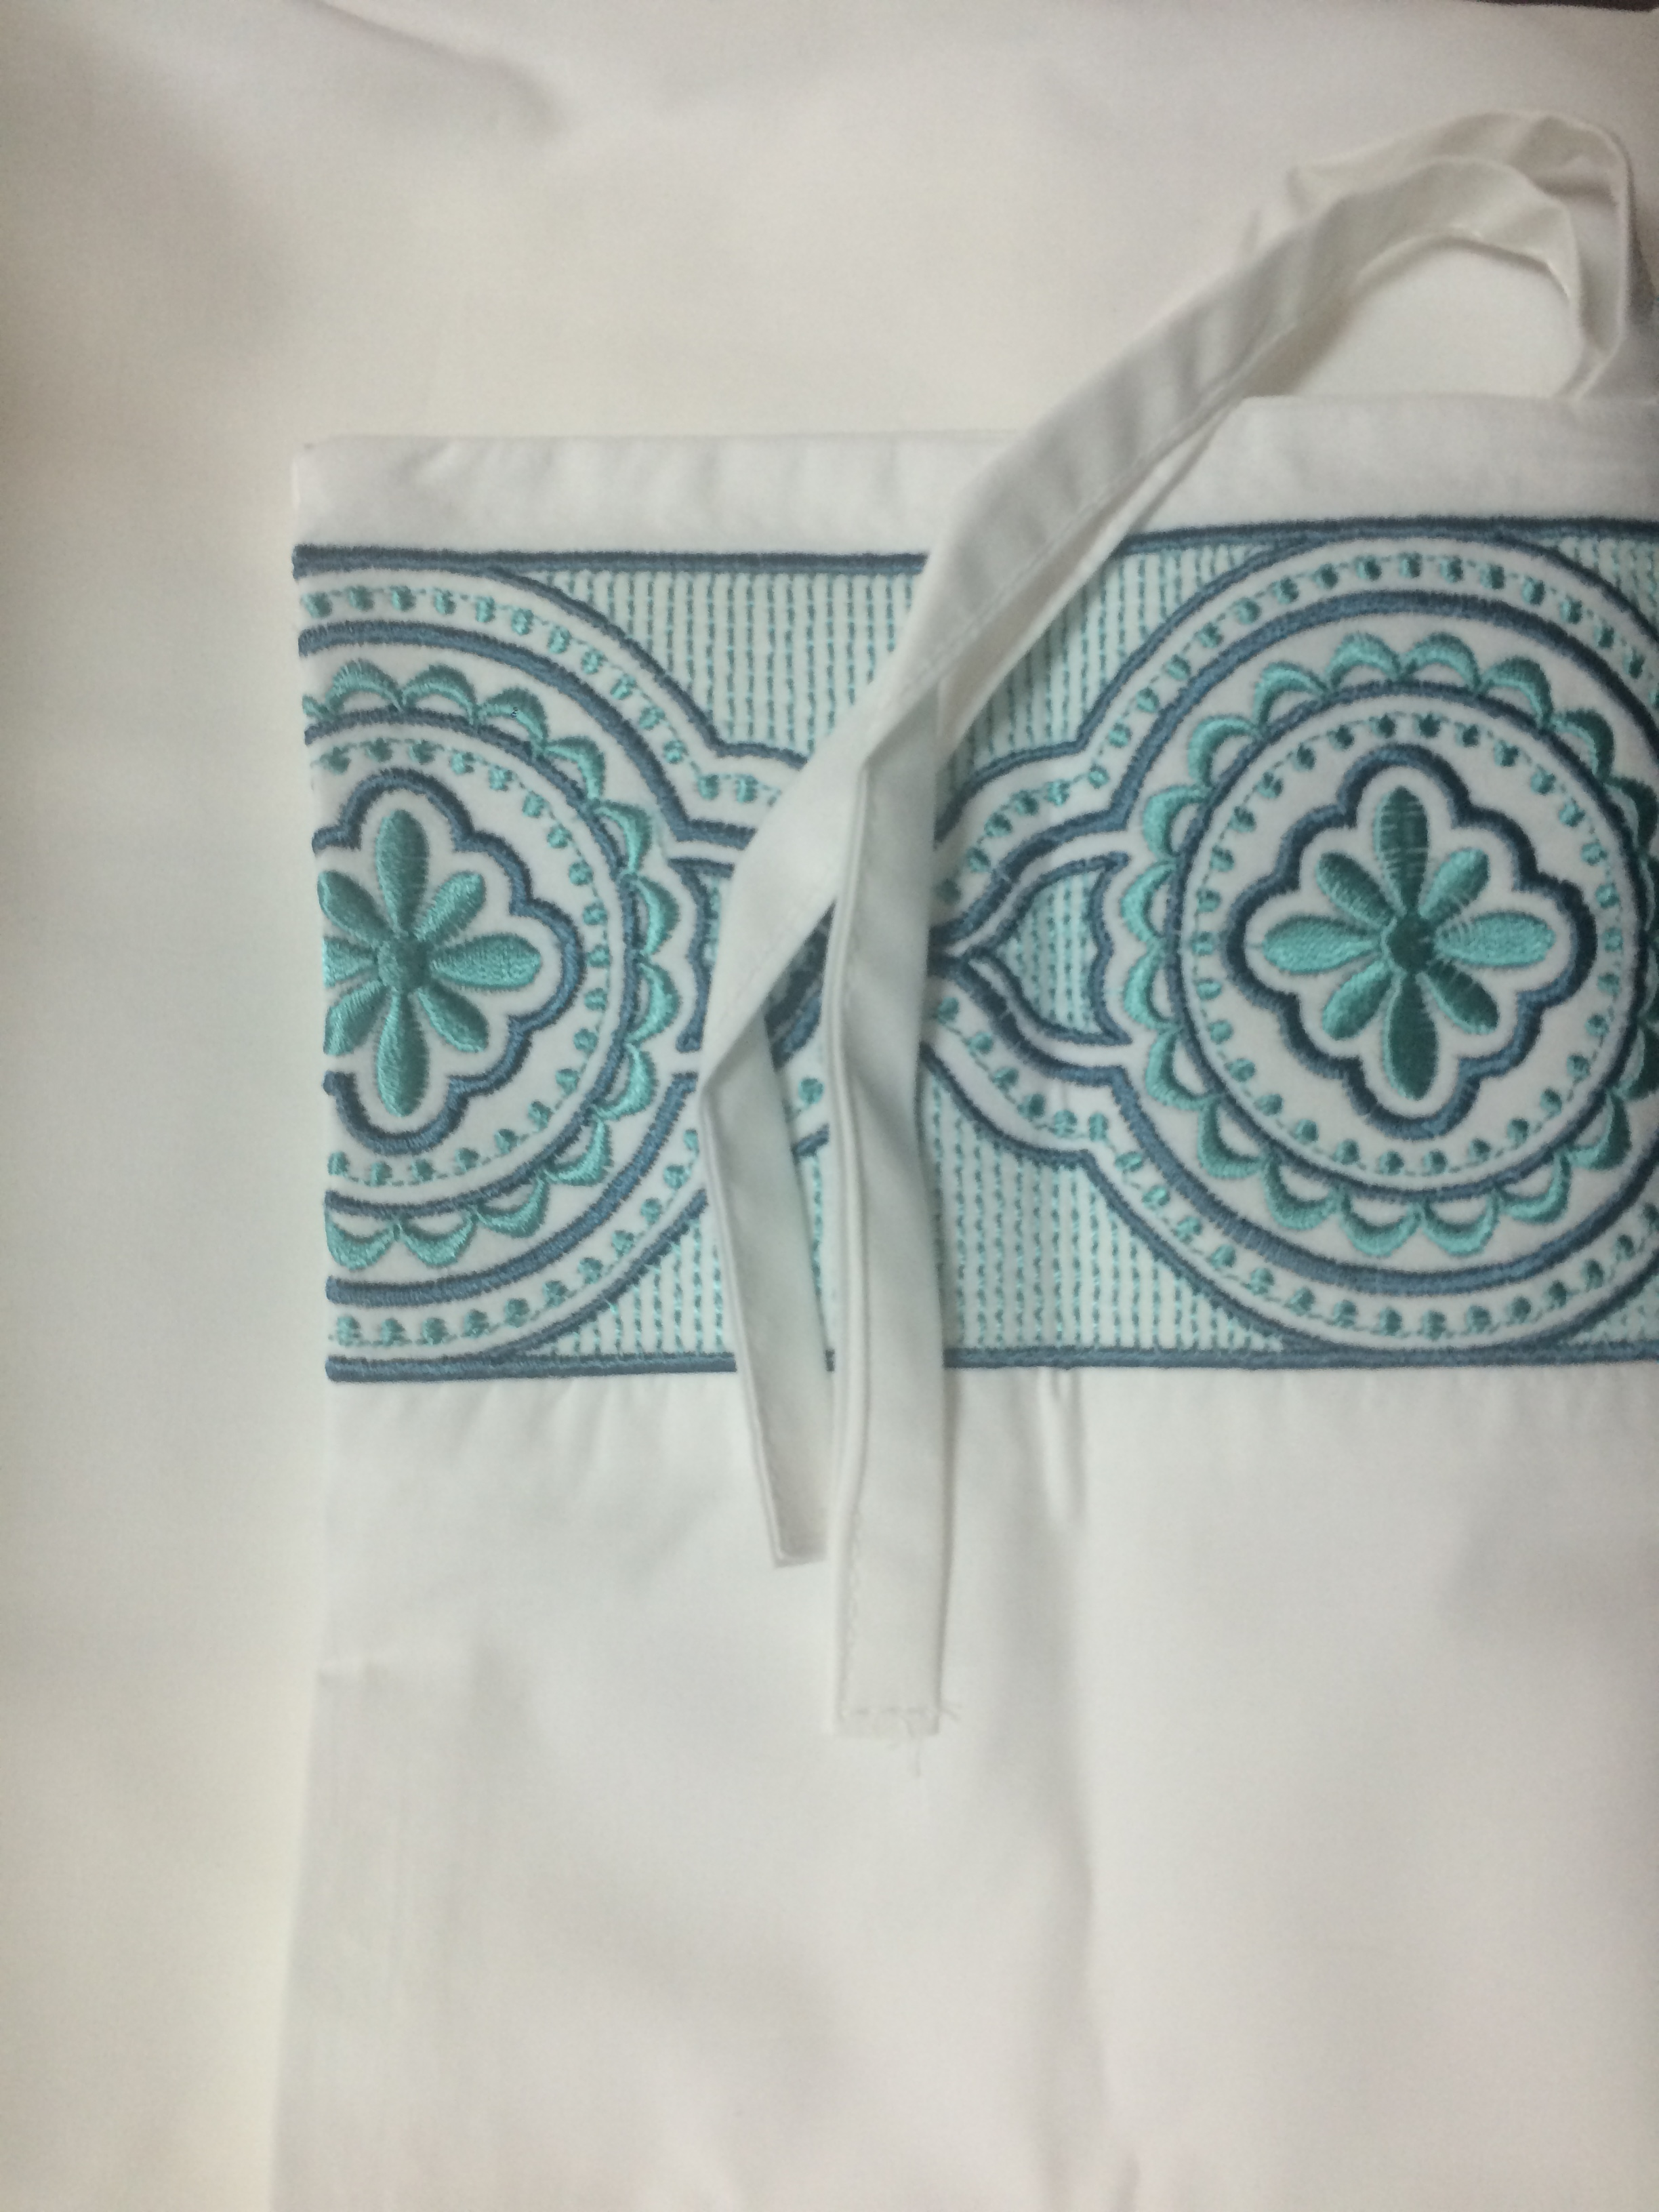 Sky Embroidered Frame Turquoise Pillow Sham Detail